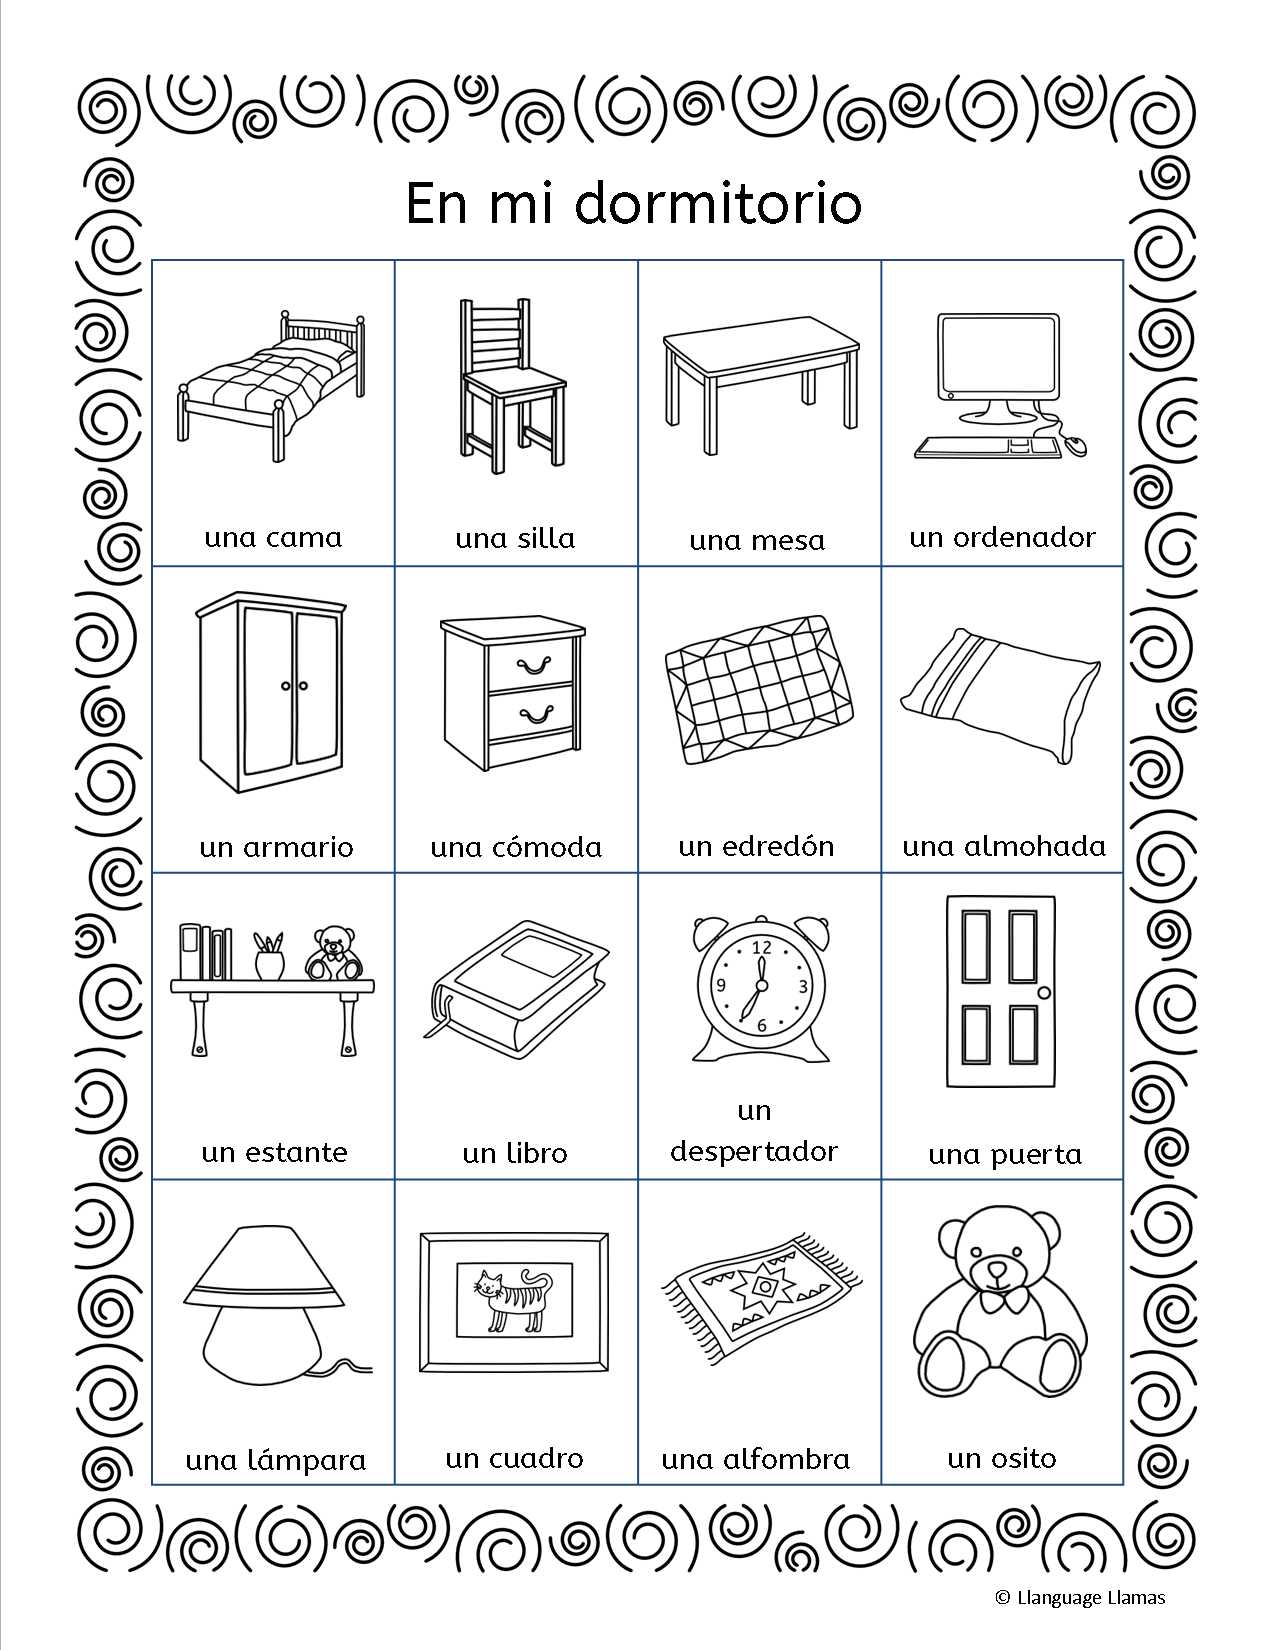 Spanish Lesson Worksheets as Well as Spanish Vocabulary Worksheets Image Collections Worksheet for Kids